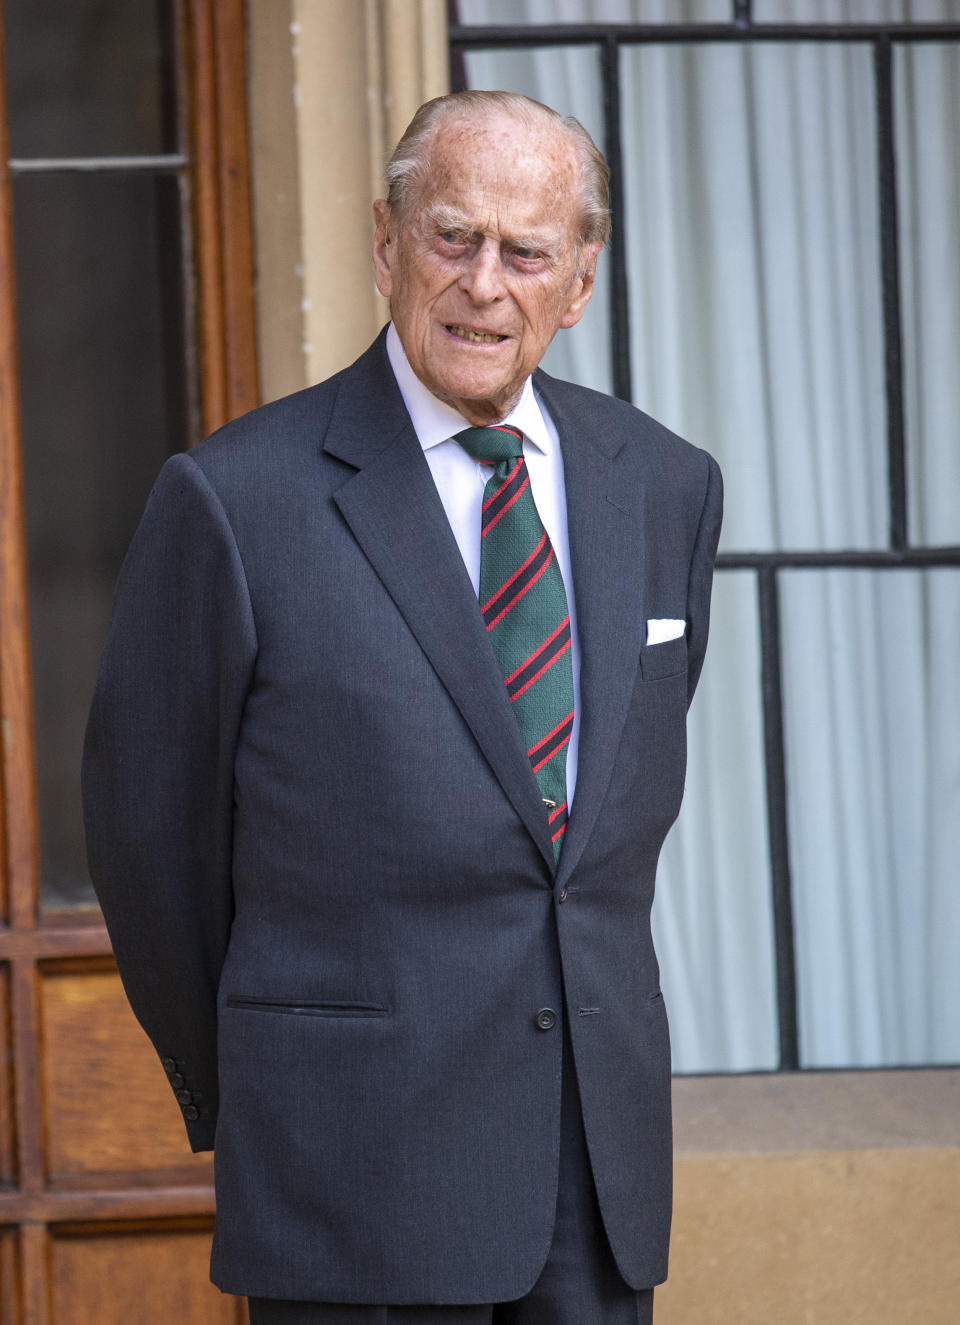 Prince Philip, Duke of Edinburgh attends a ceremony to mark the transfer of the Colonel-in-Chief of The Rifles at Windsor Castle on July 22, 2020.  The 99 year old Duke is stepping down from his role as Colonel-in-Chief after 67 years of service and is transferring it to Camilla,Duchess of Cornwall.